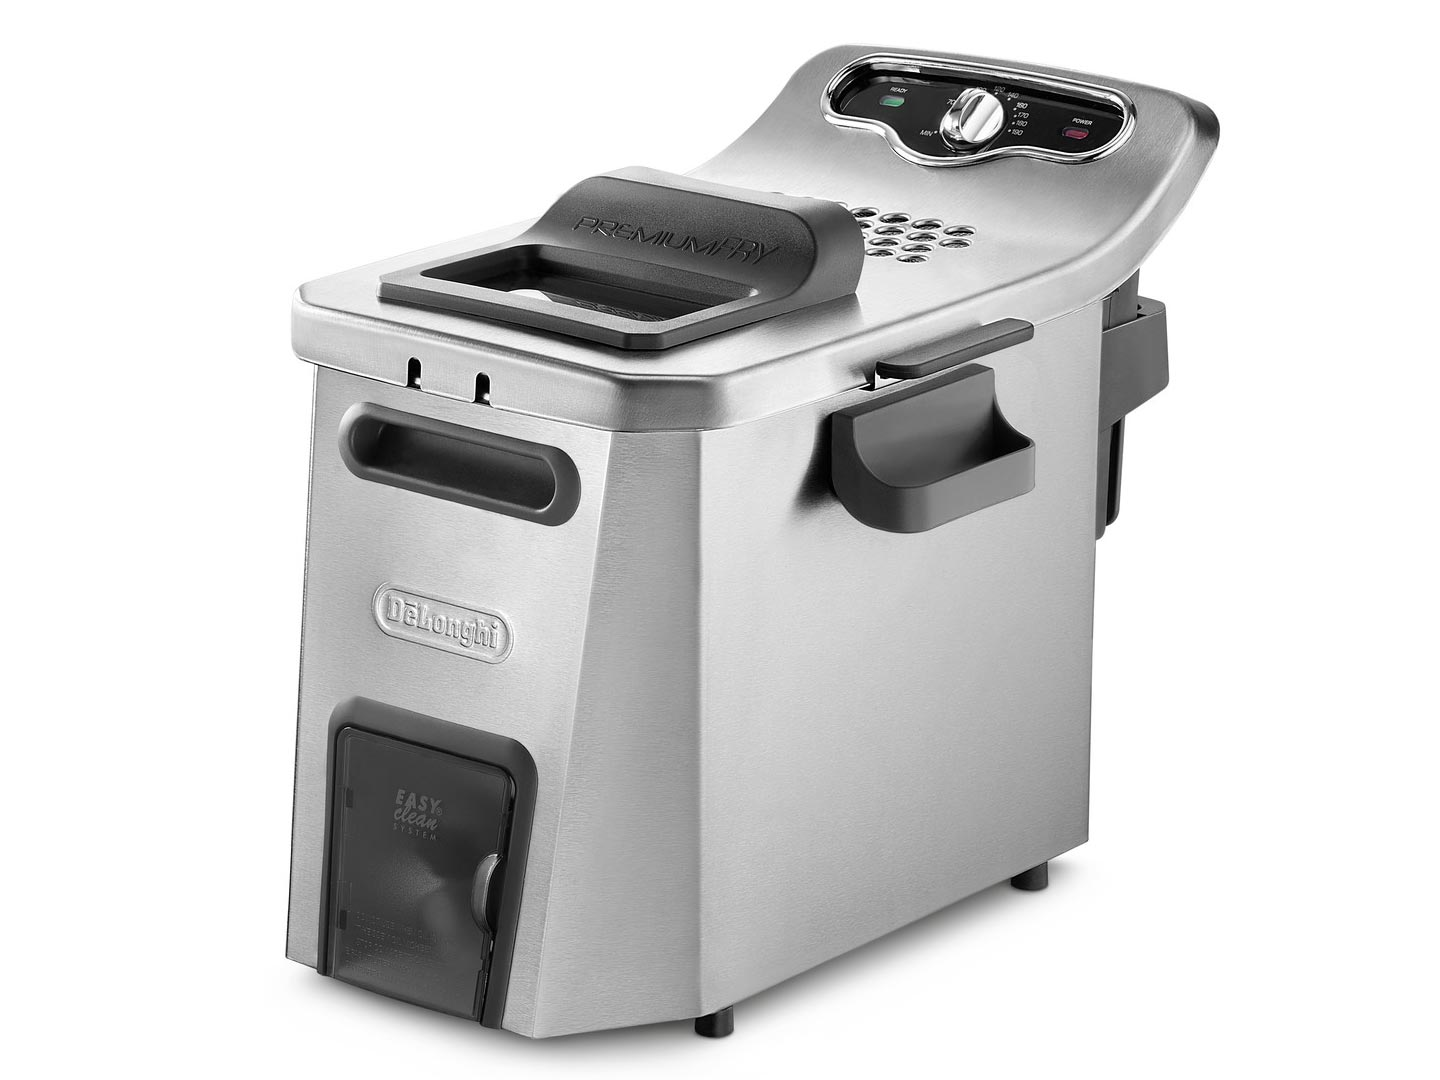 Delonghi friteuse easy clean system